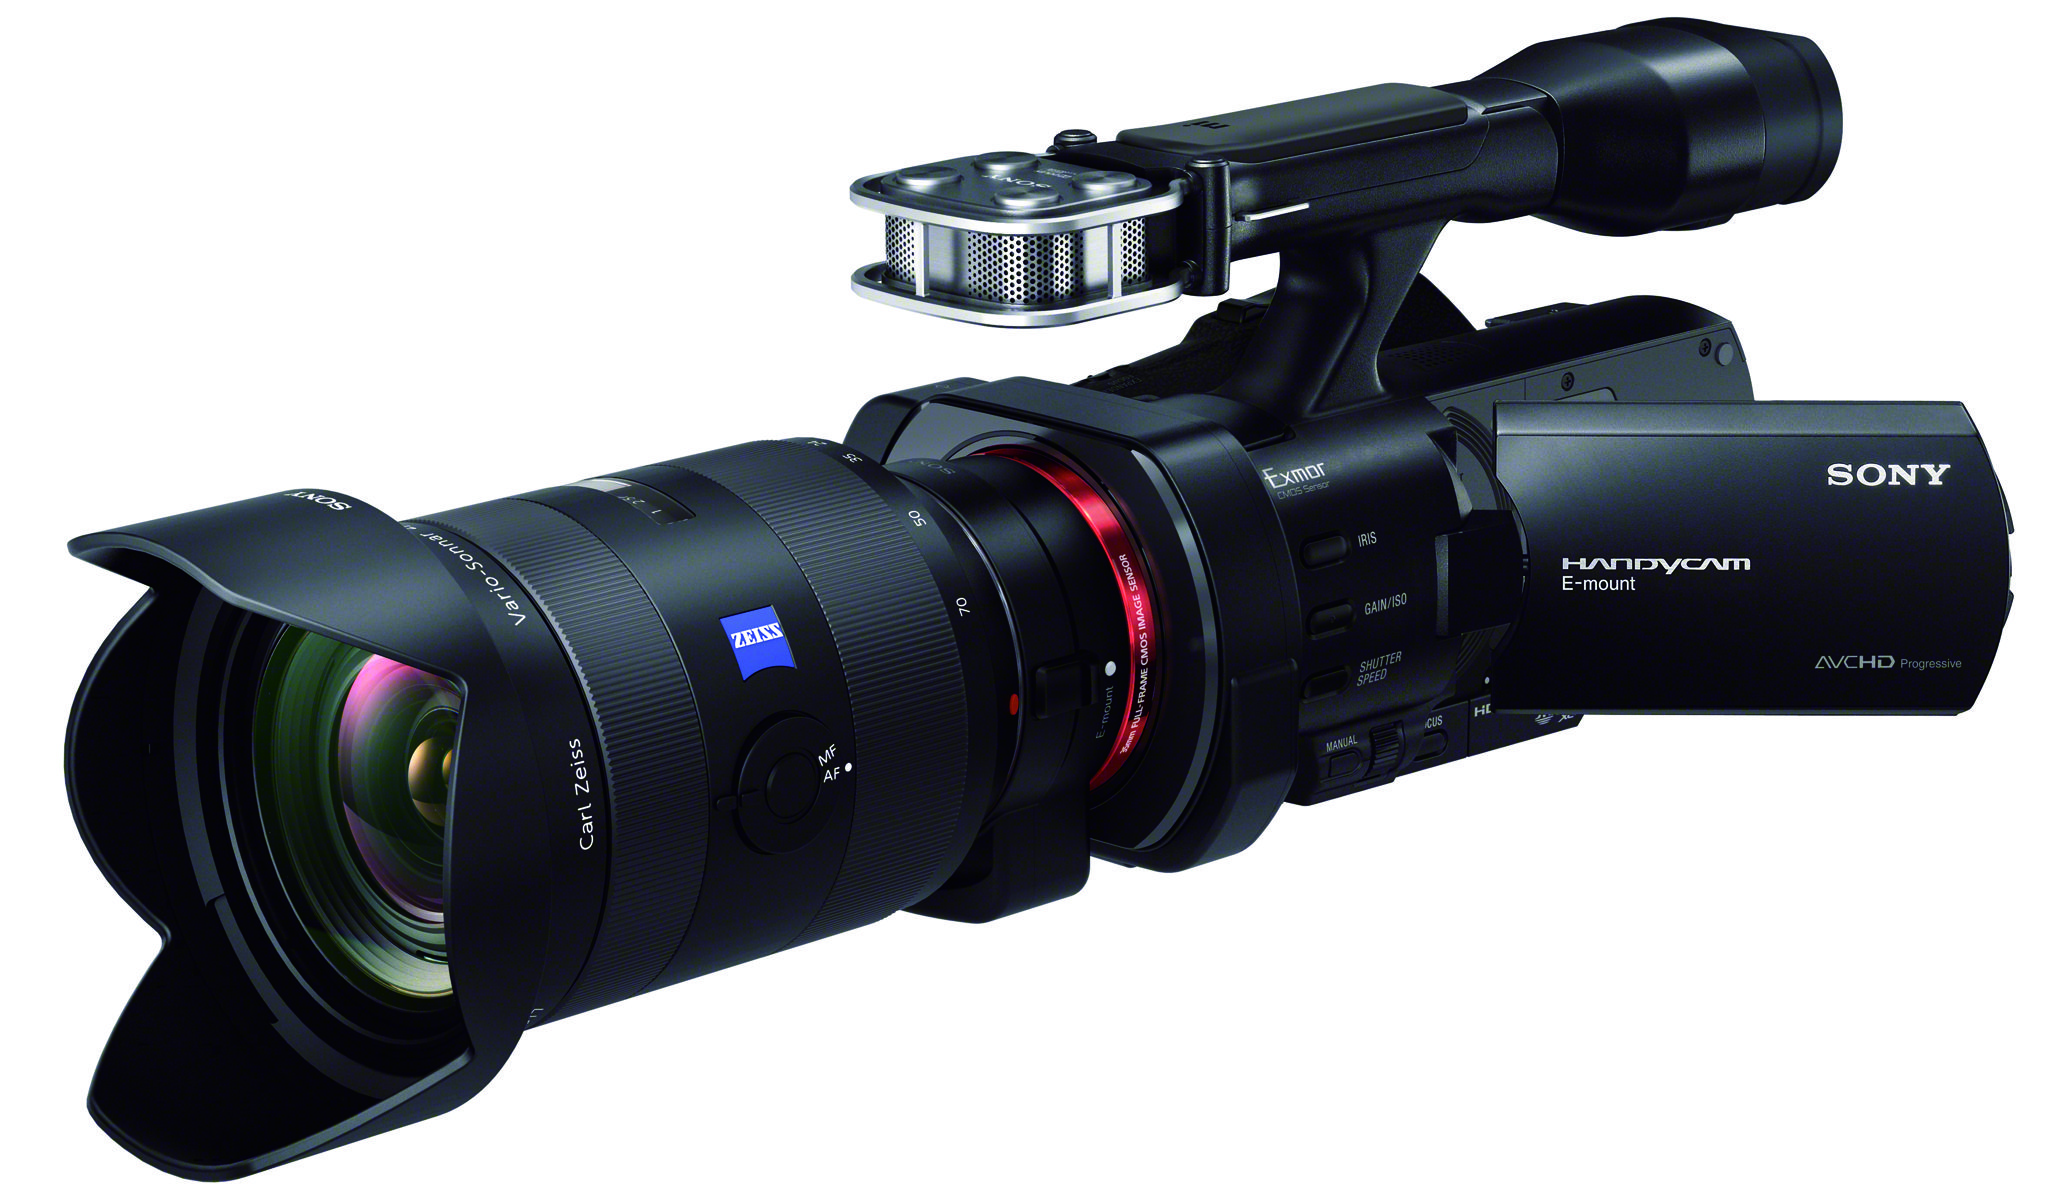 Sony NEXVG900 with LAEA3 lens adapter and Alpha lens